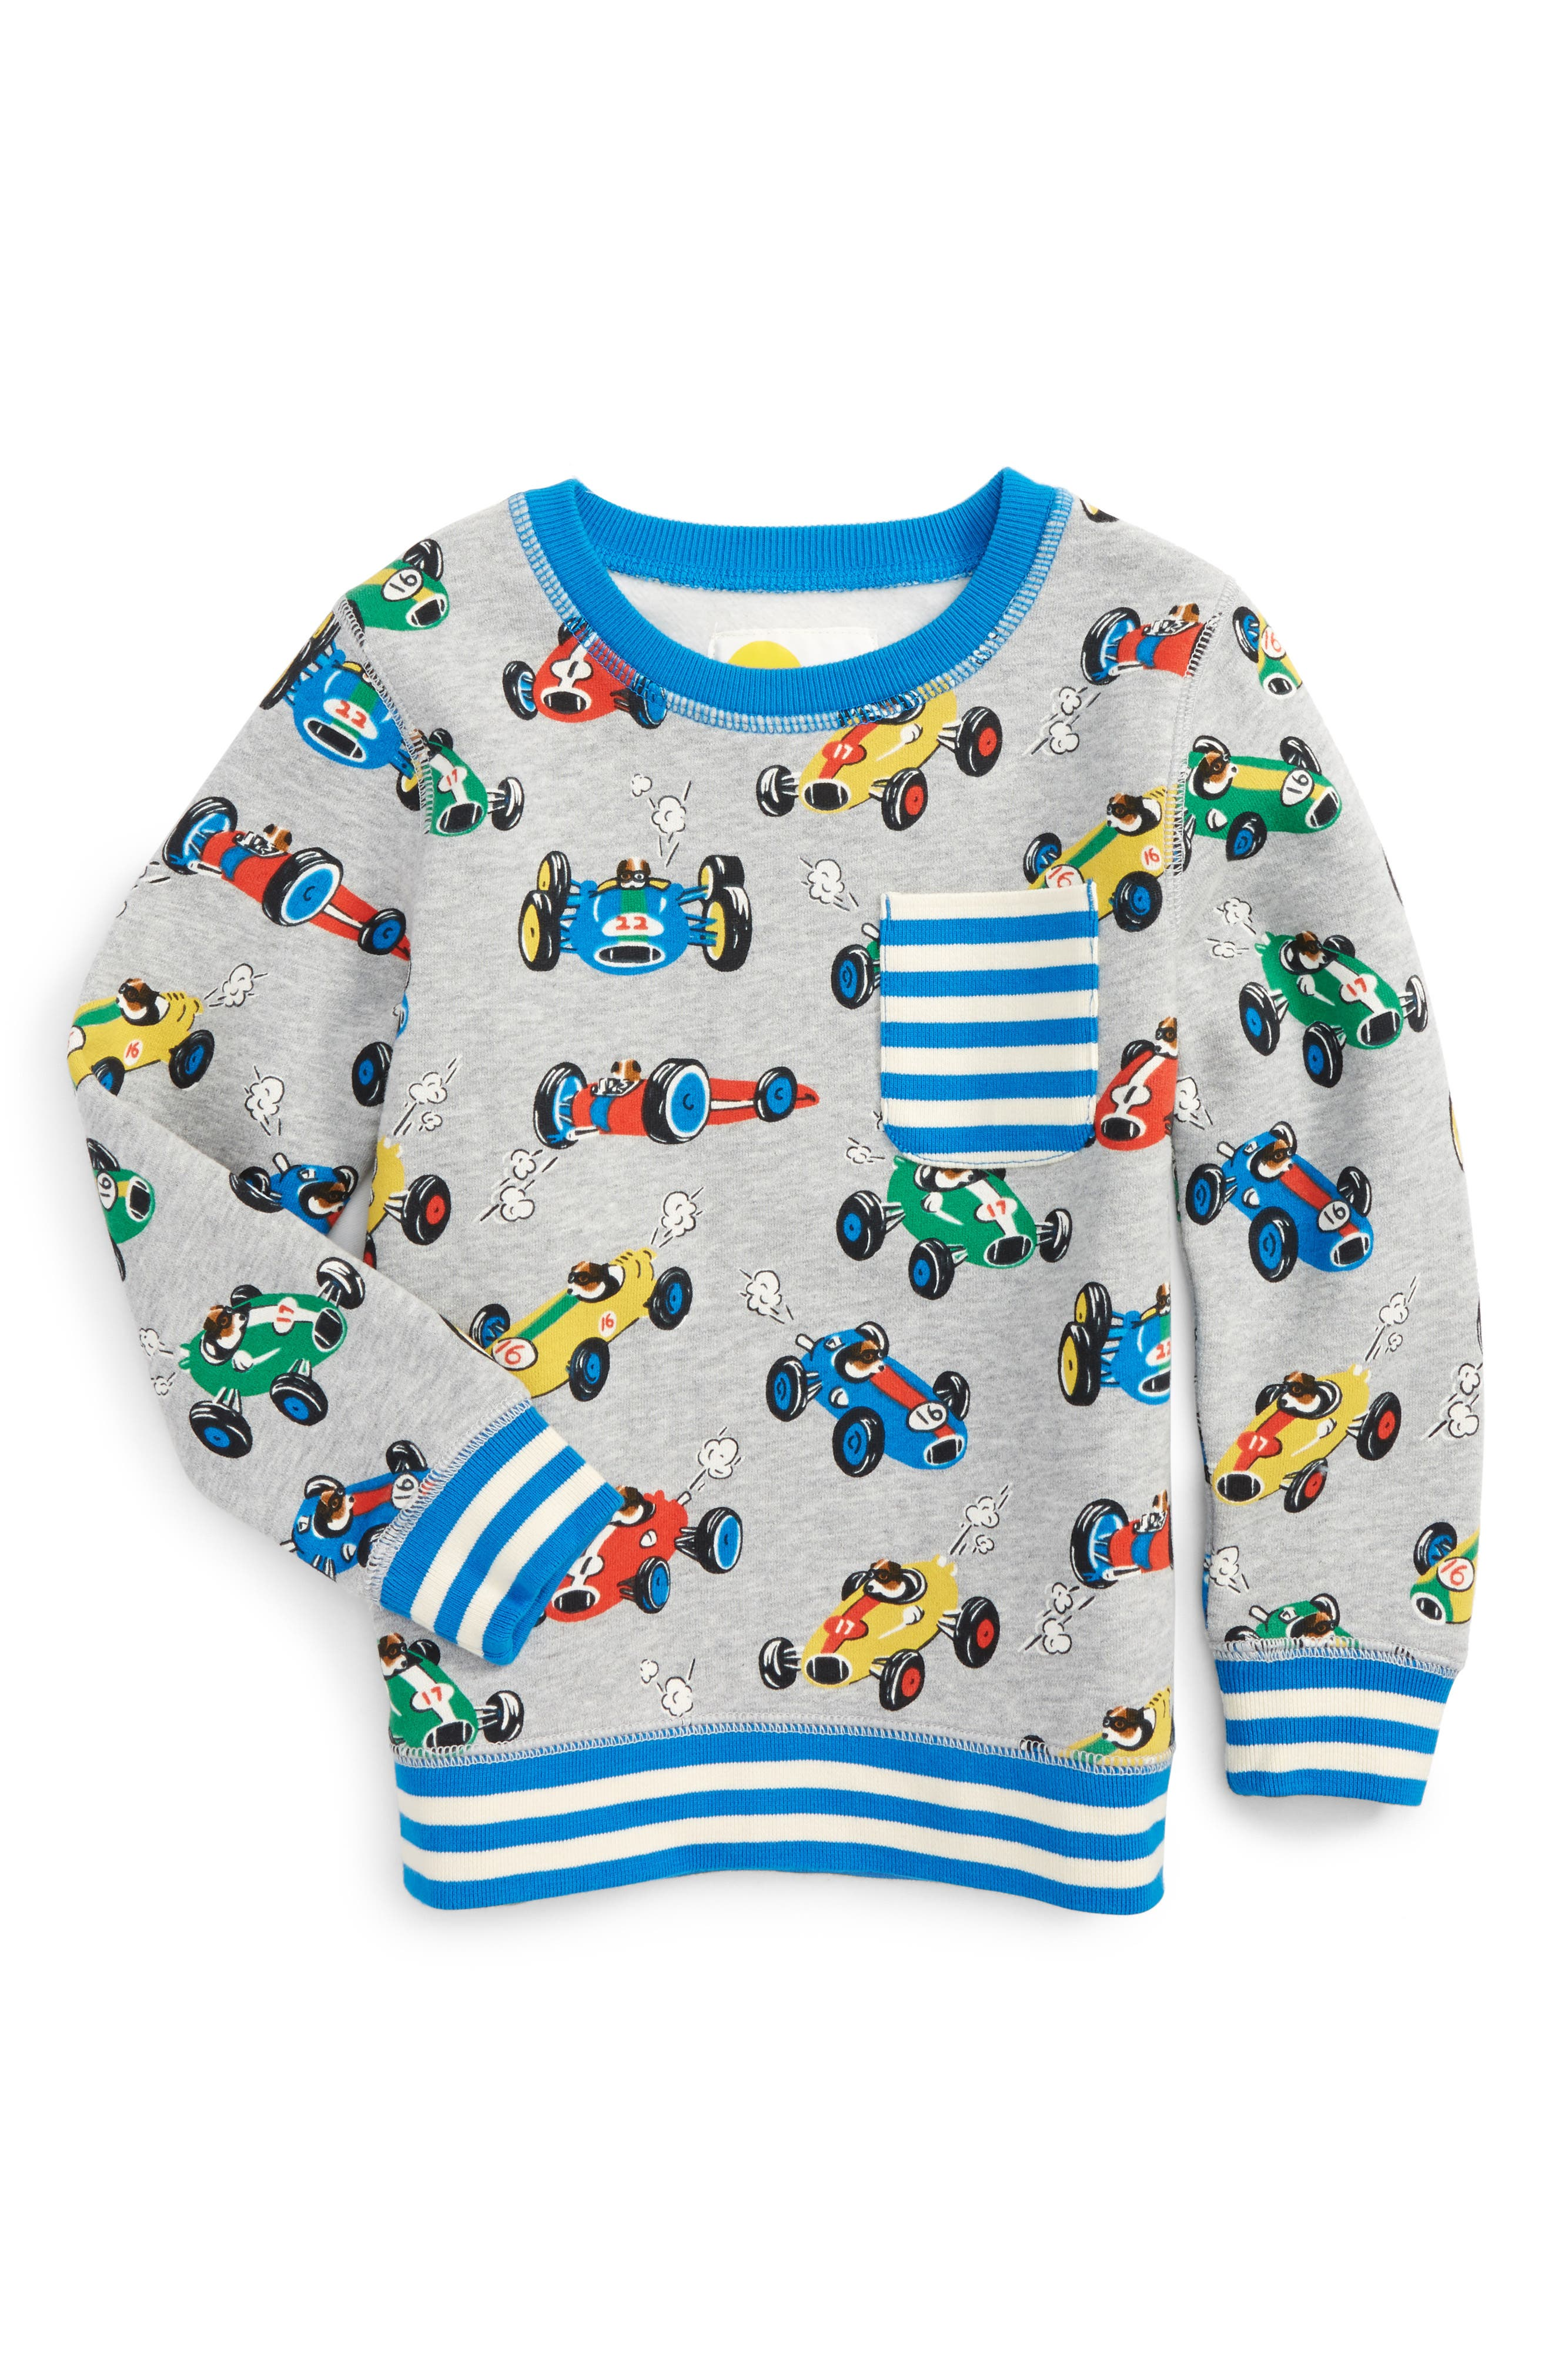 Alternate Image 1 Selected - Mini Boden Fun Print Sweatshirt (Toddler Boys, Little Boys & Big Boys)